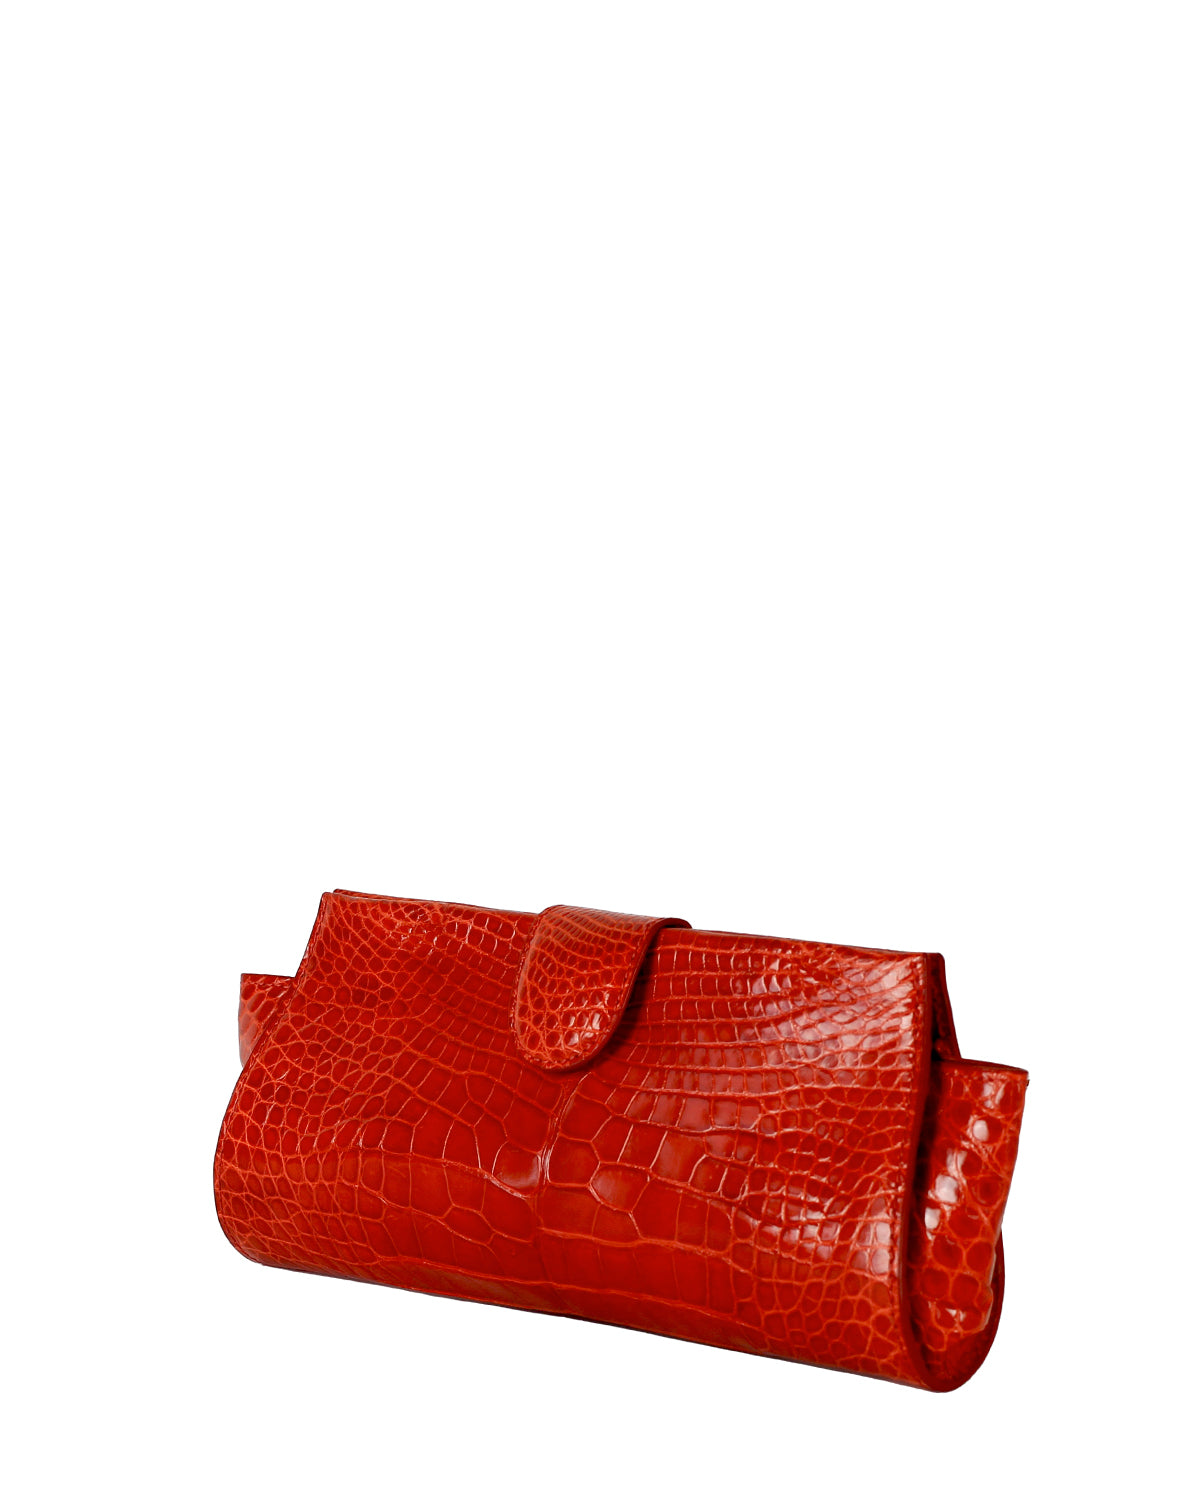 YB Red Croco Alligator Evening Clutch Angle View